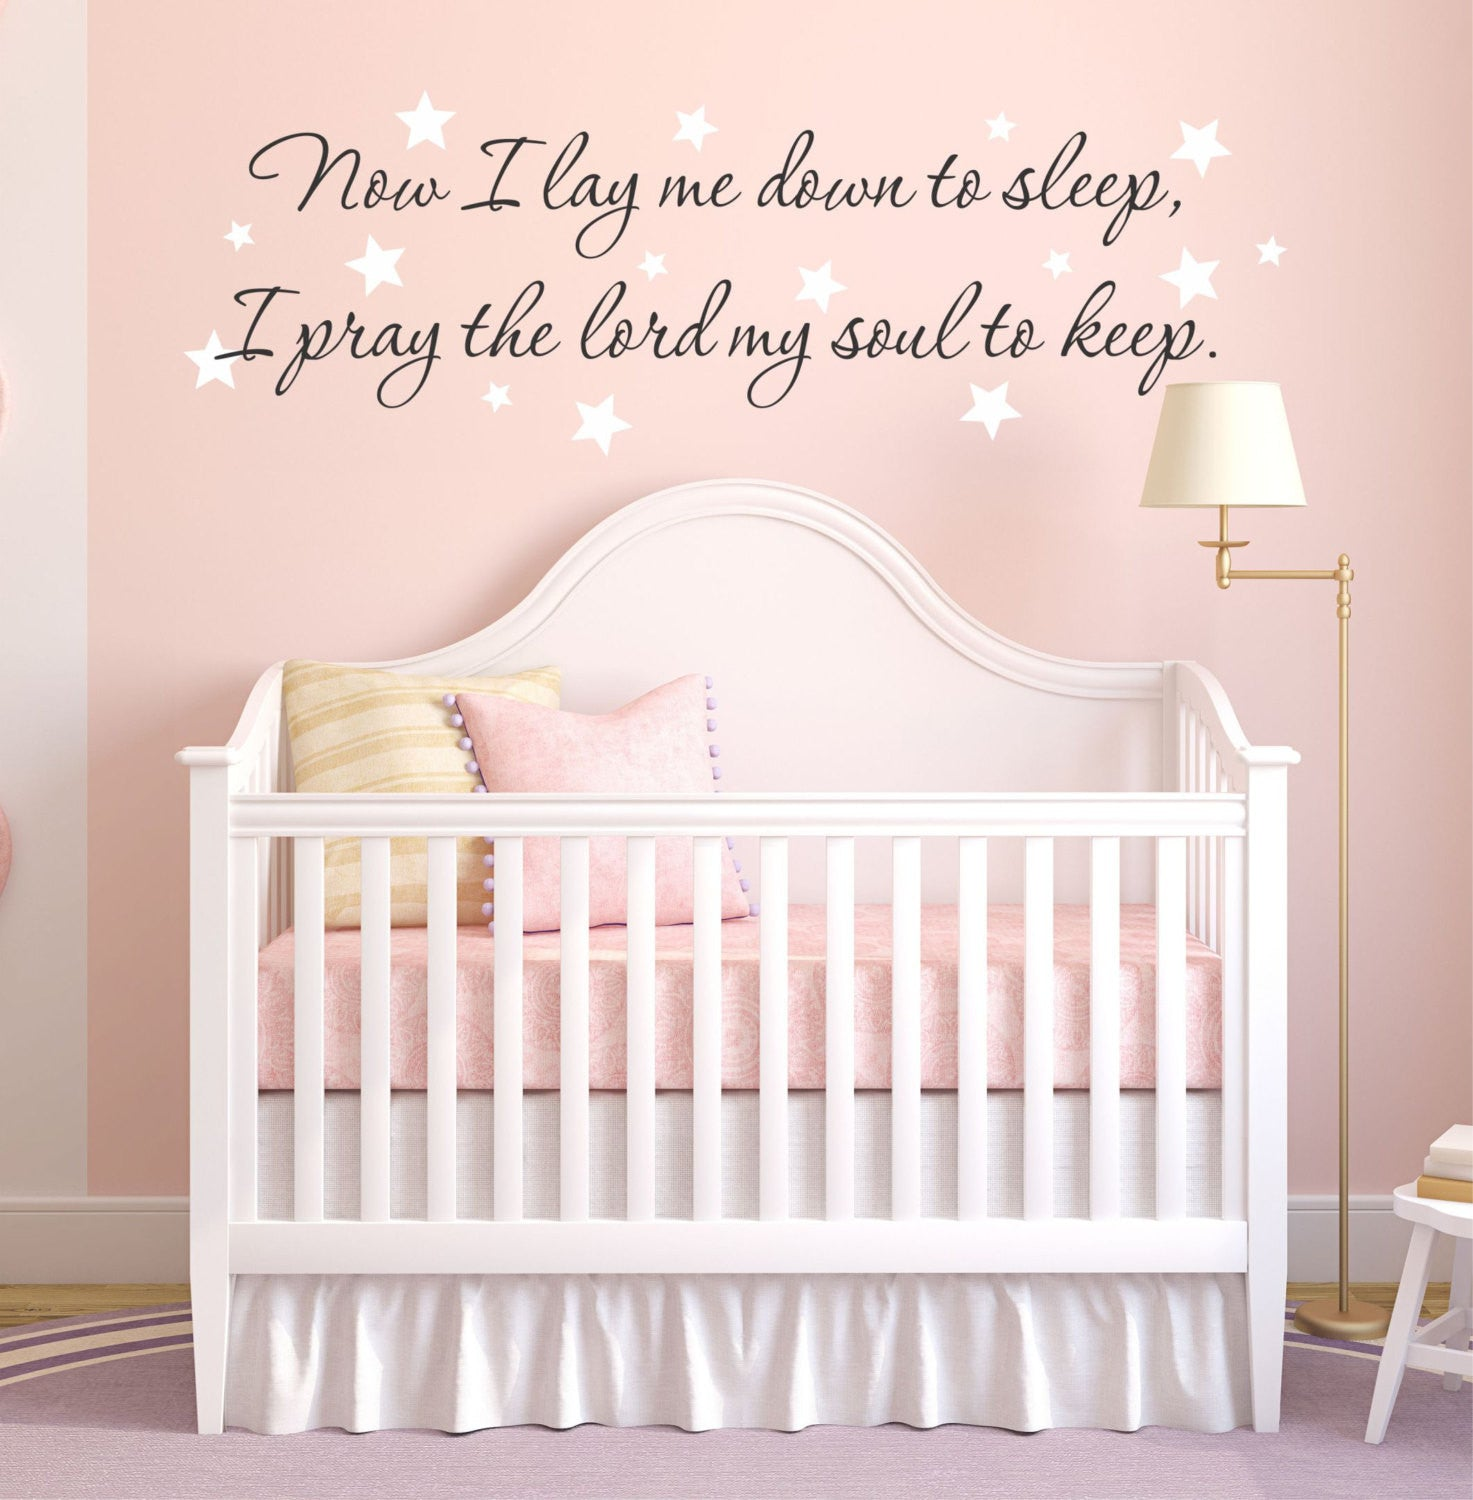 now i lay me down to sleep wall decal by decor designs decals praye now i lay me down to sleep wall decal by decor designs decals prayer